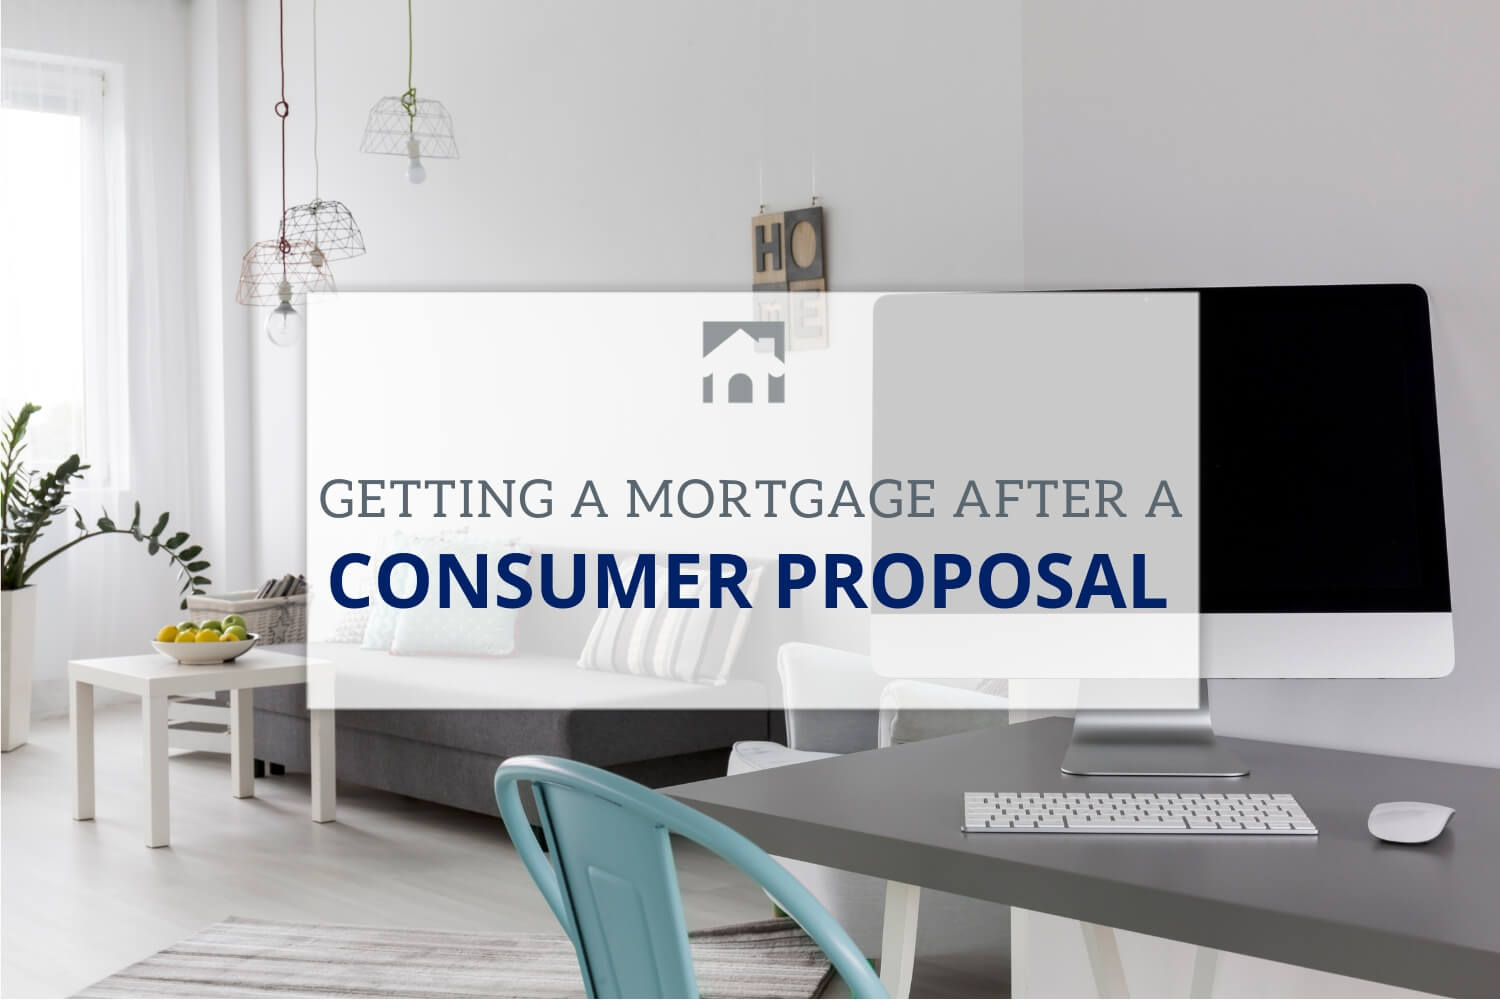 Text: Getting a Mortgage After Consumer Proposal Background: Image of an office/living room wih computer featured prominently